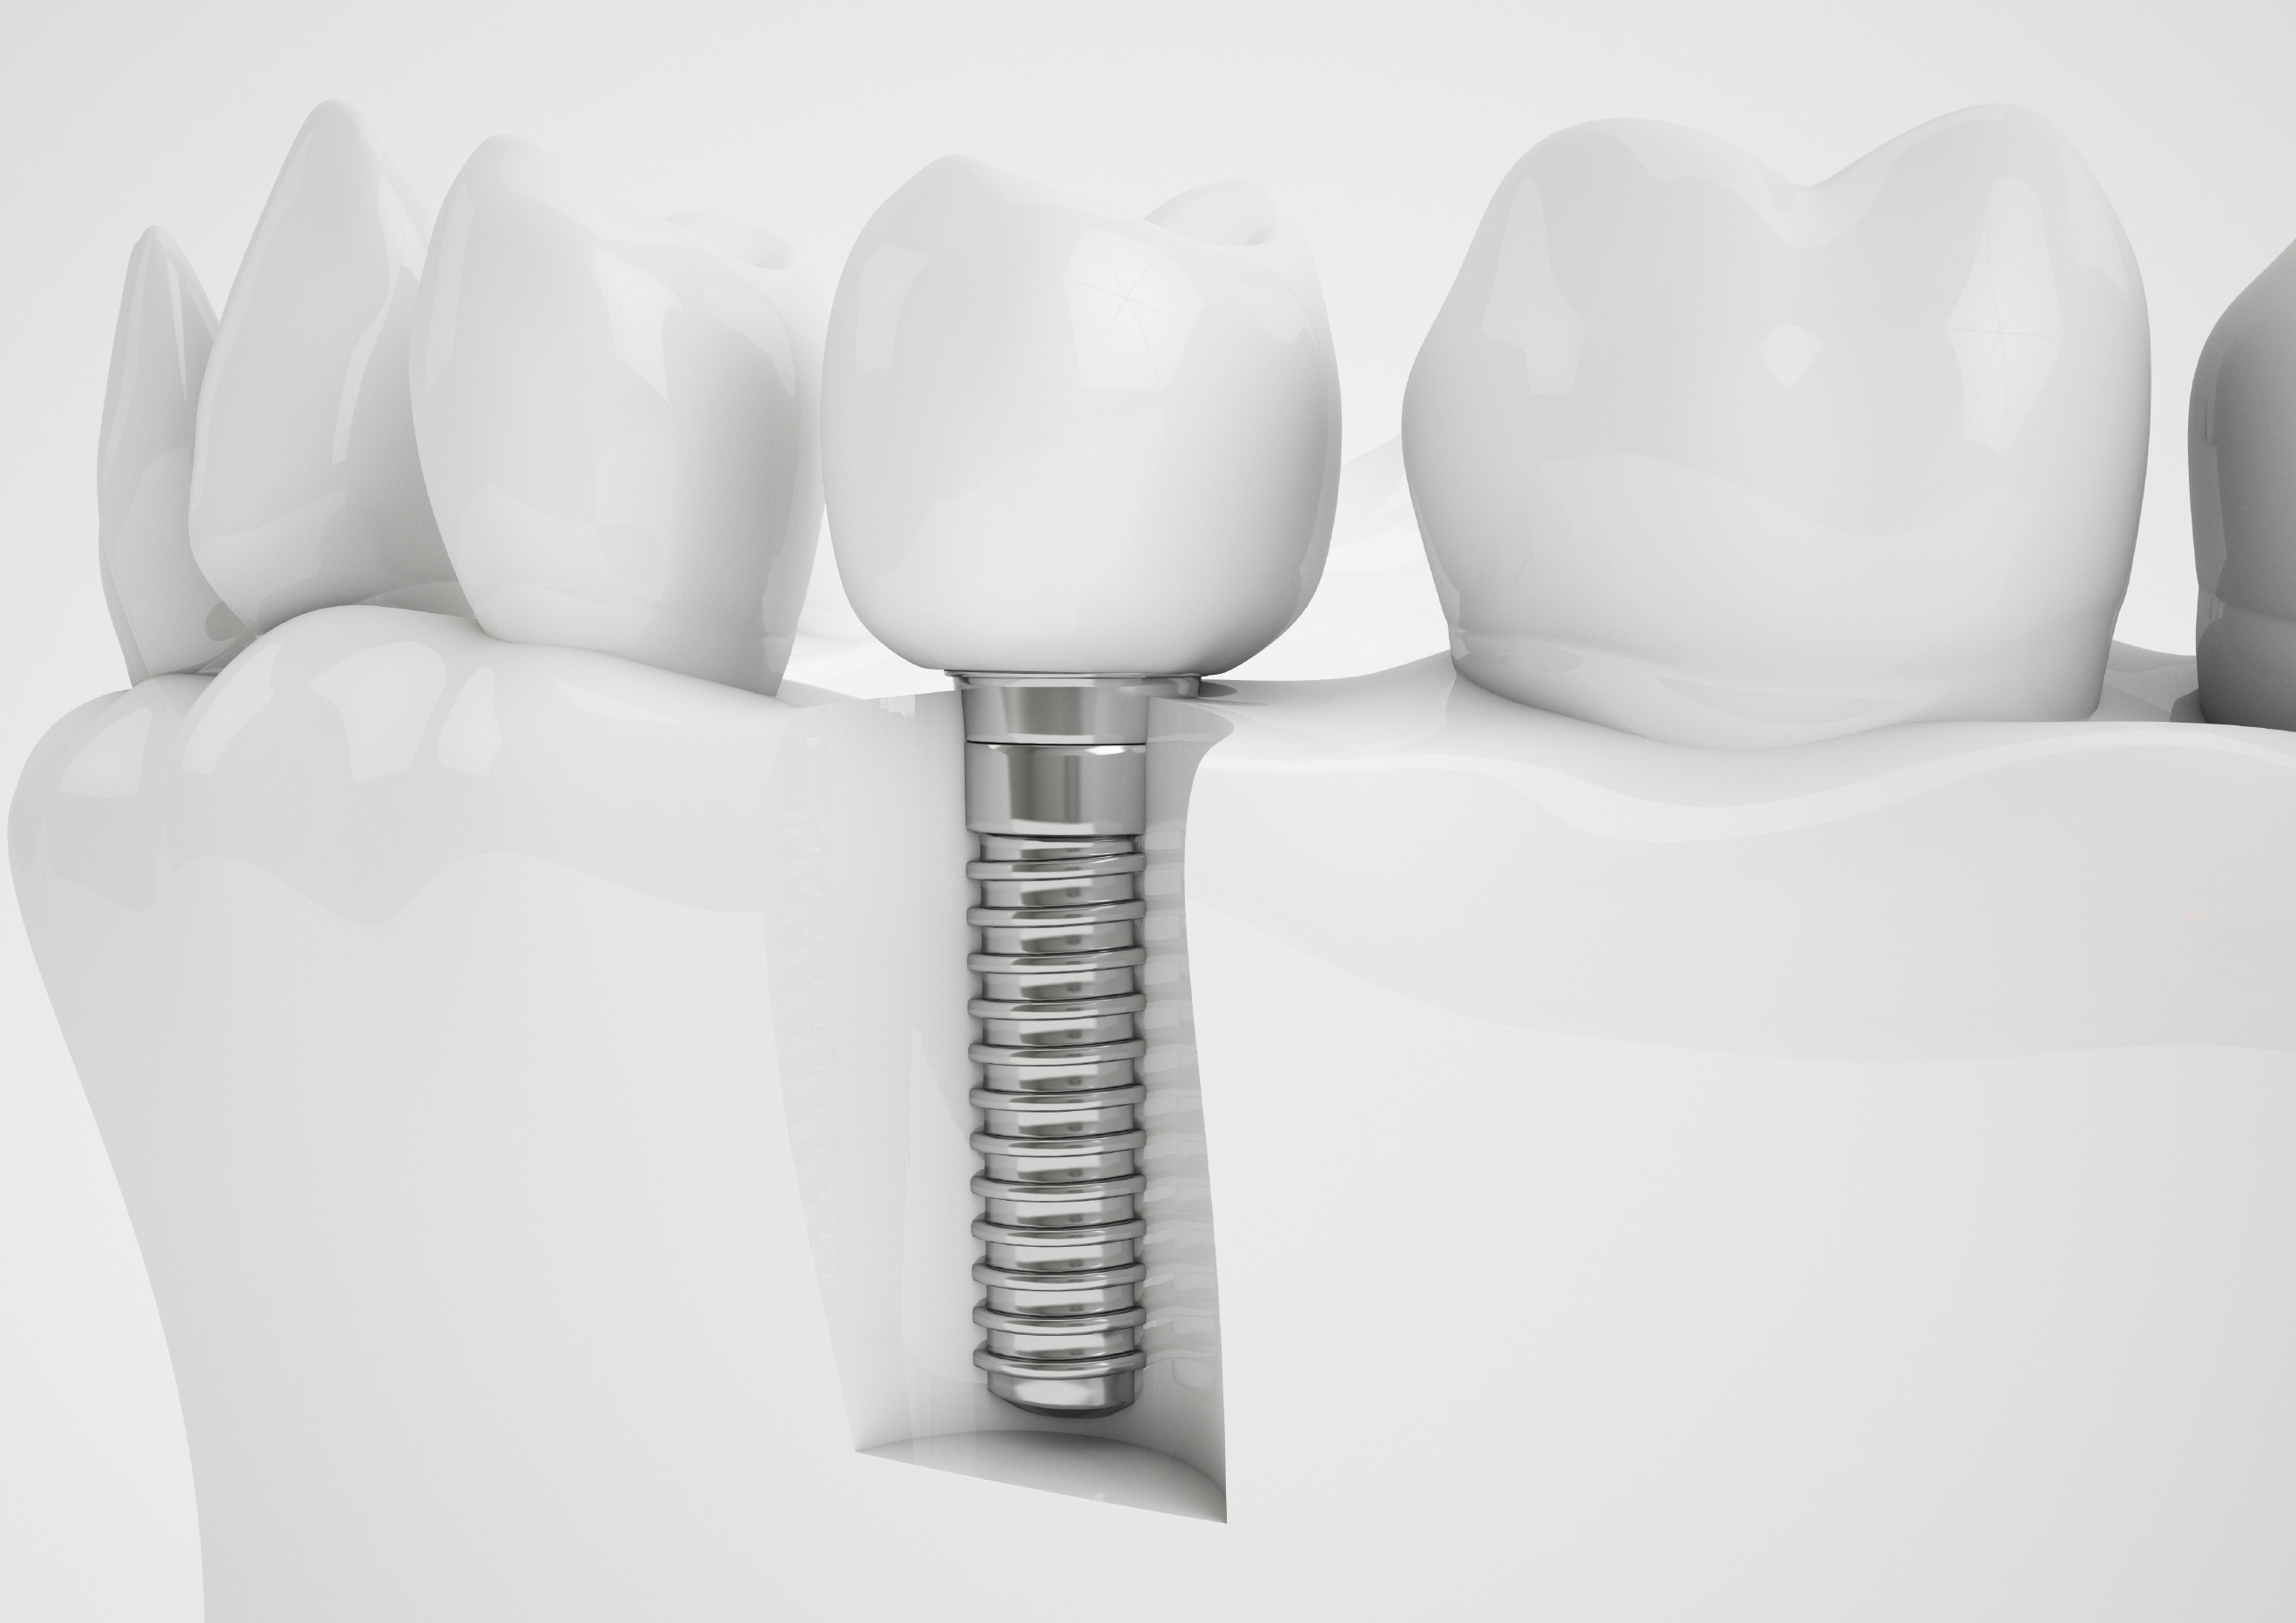 Failures of Implant – Tip!